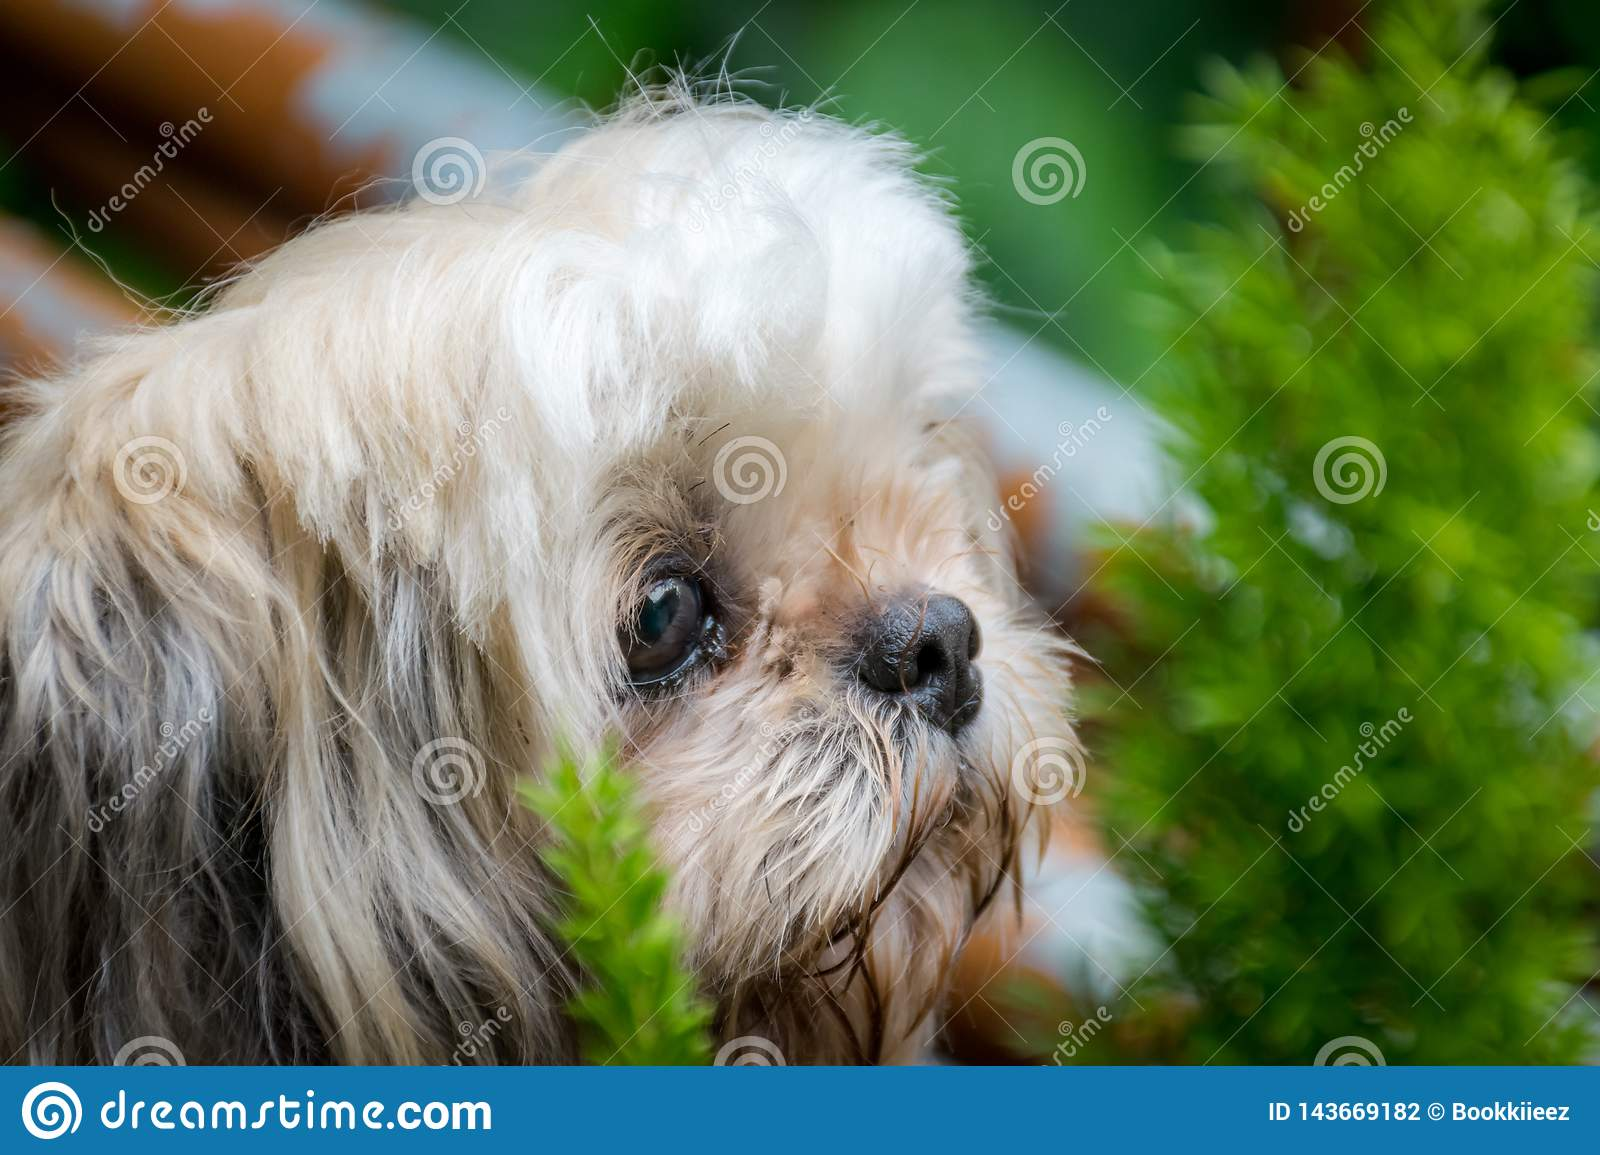 Shih-Tzu dog with little tree in background.